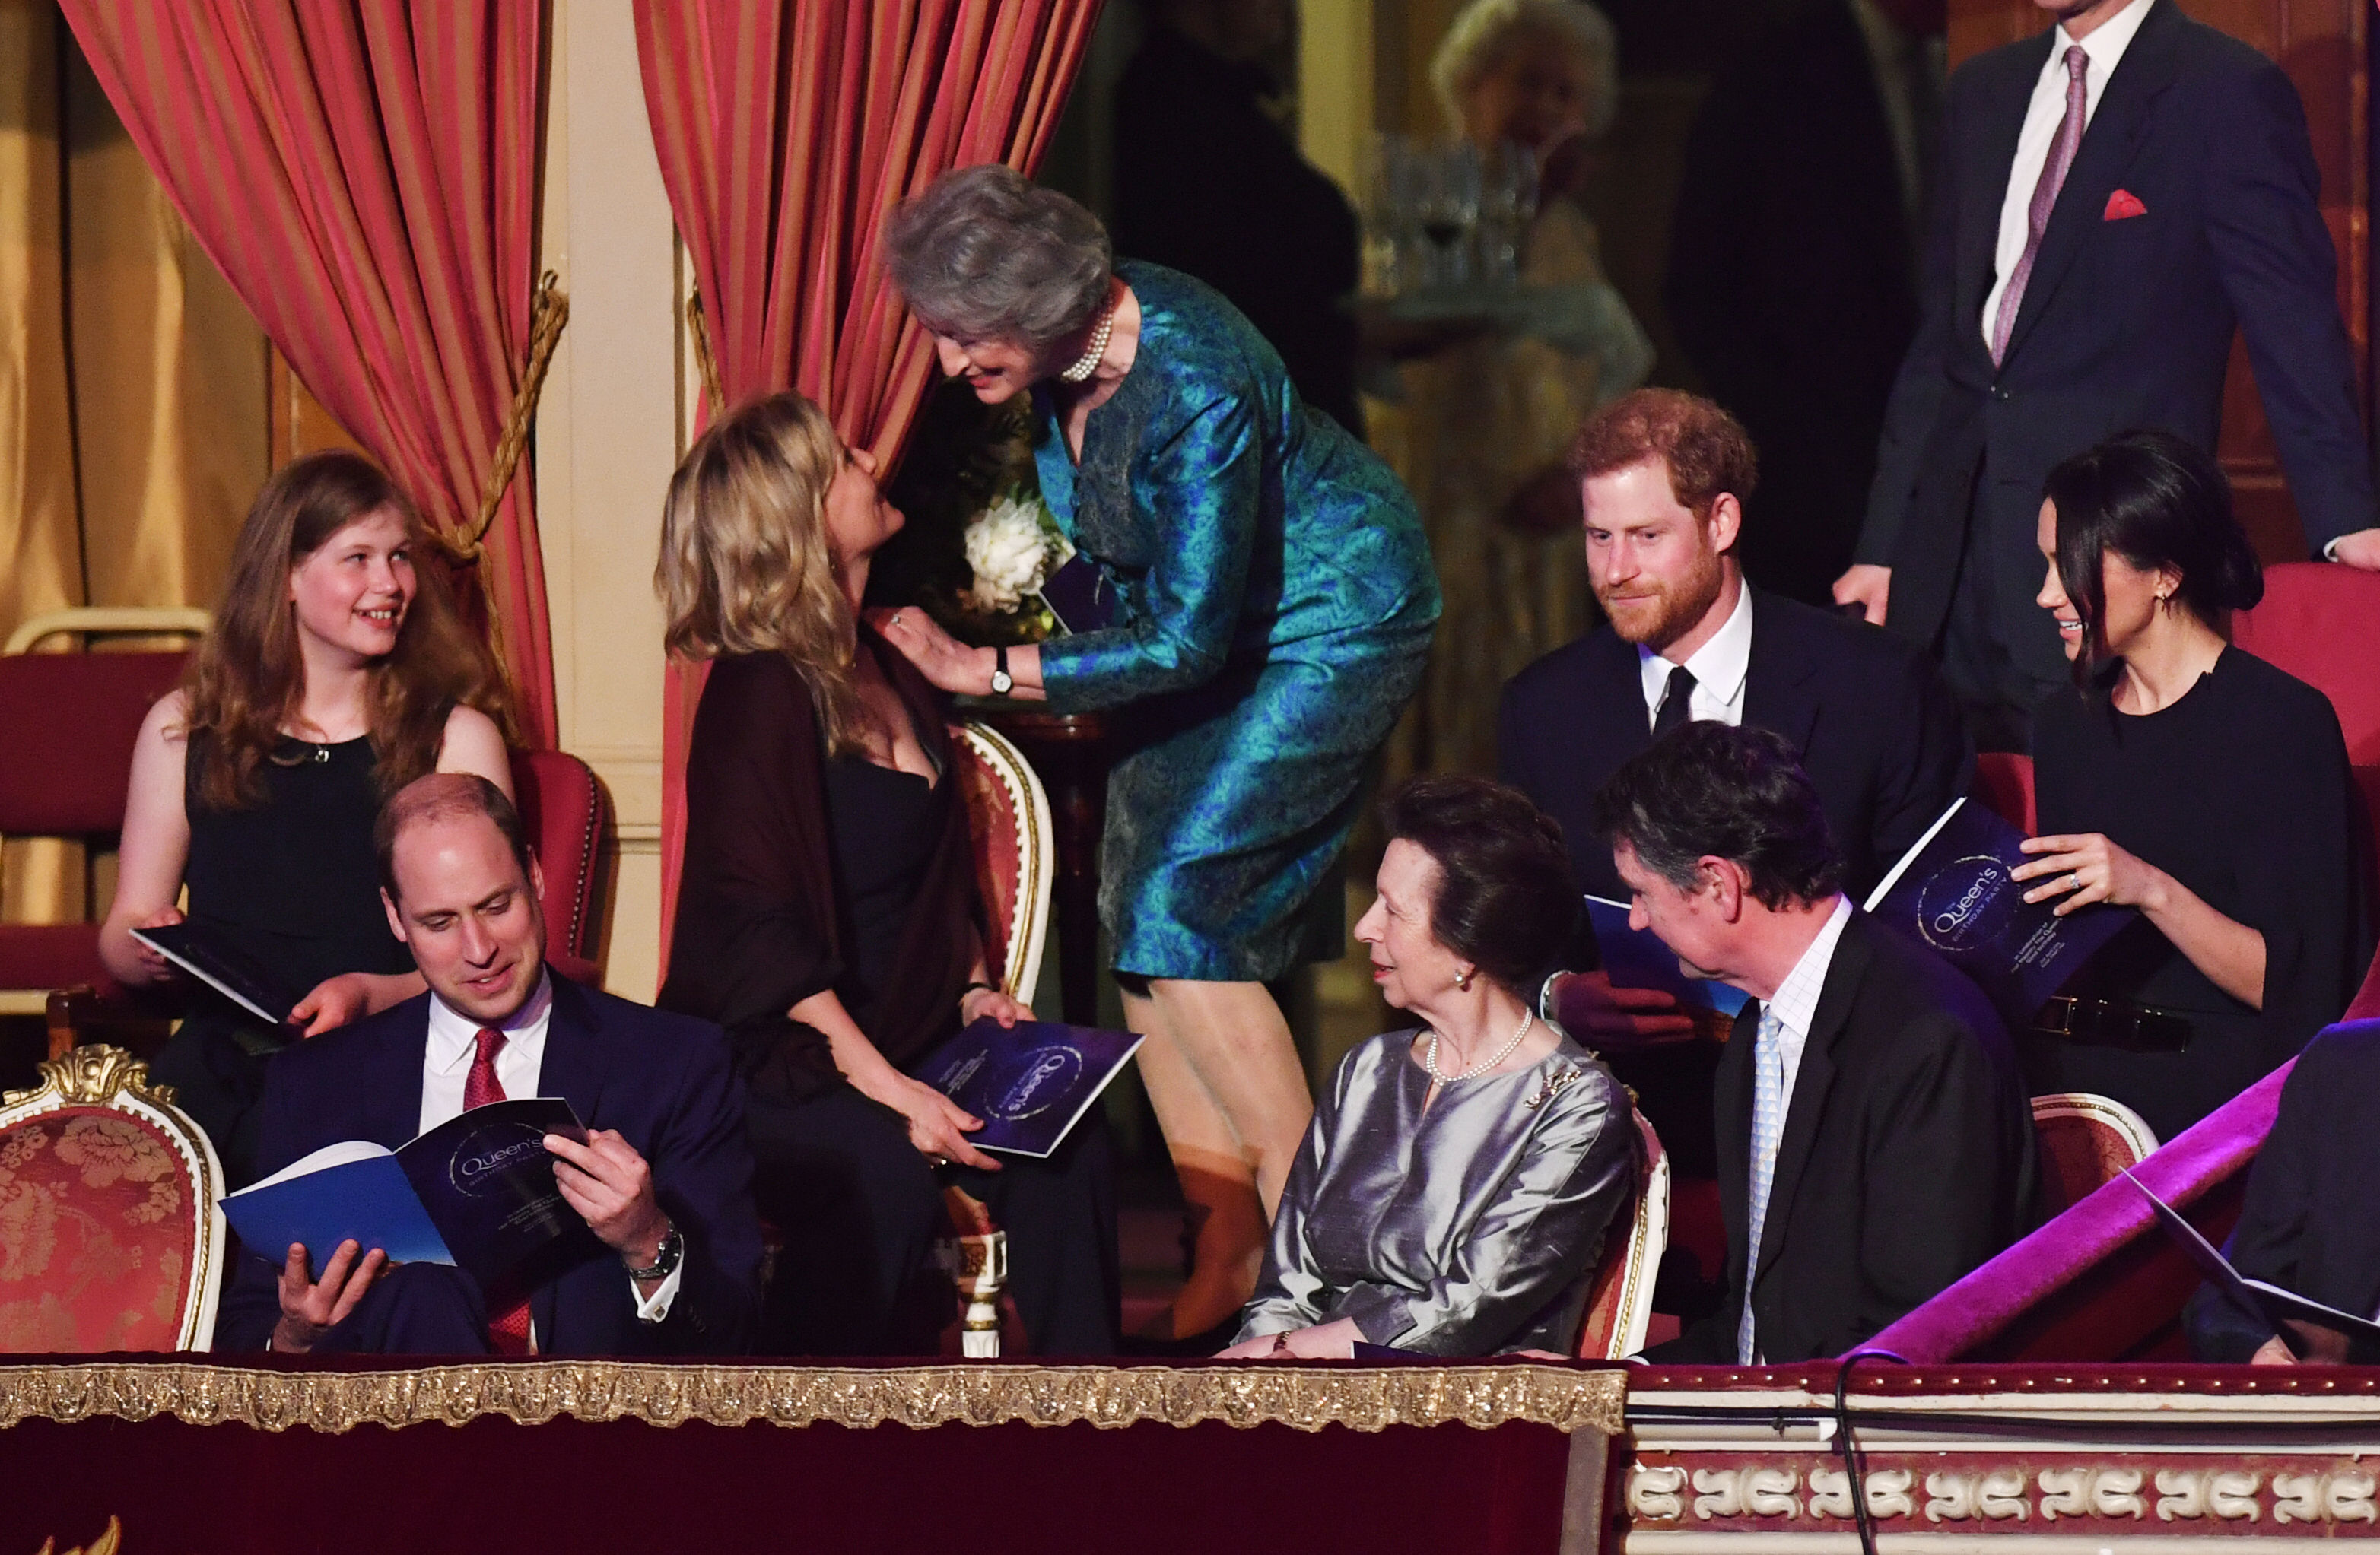 The Duke of Cambridge, Lady Louise Windsor, the Princess Royal, Prince Harry and Meghan Markle were seated in the royal box (John Stillwell/PA)